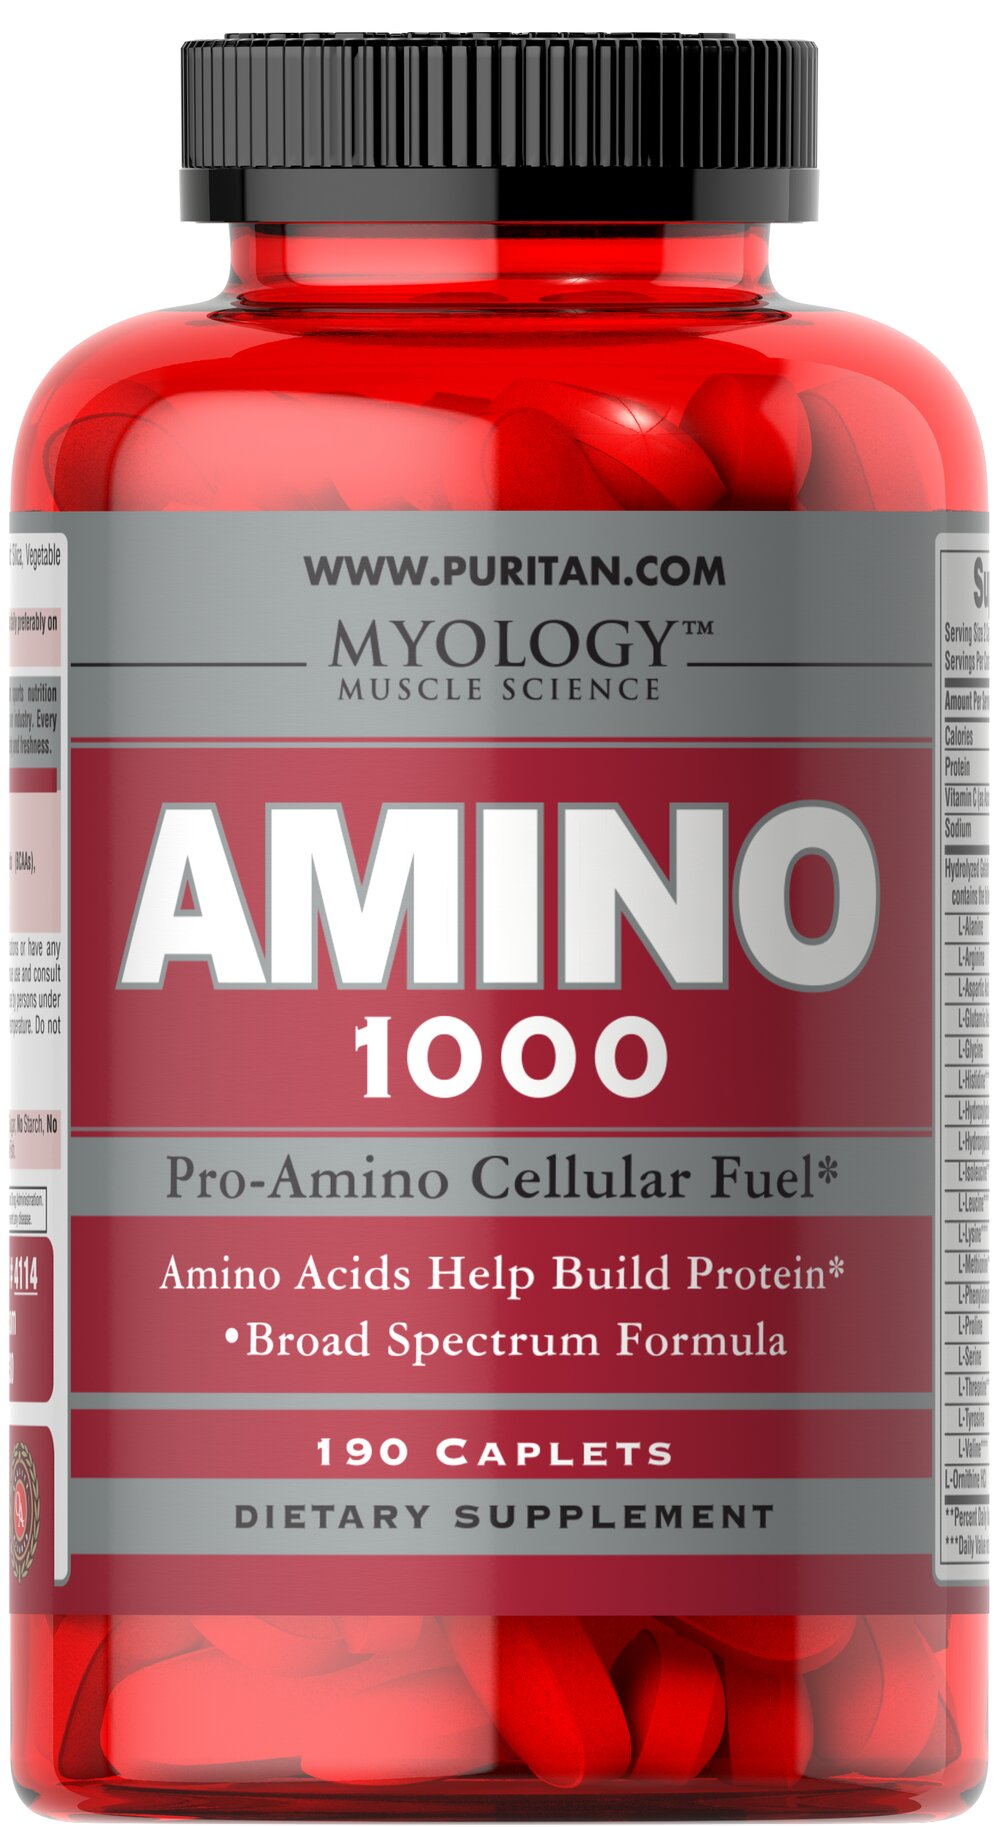 Amino 1000 <p>This Amino Acid formula contains all three Branch Chained Amino Acids (BCAAs), as well as other essential Aminos.  Amino Acids provide crucial building blocks for protein which are the main components of muscle tissue.**</p> 190 Caplets 1000 mg $17.99